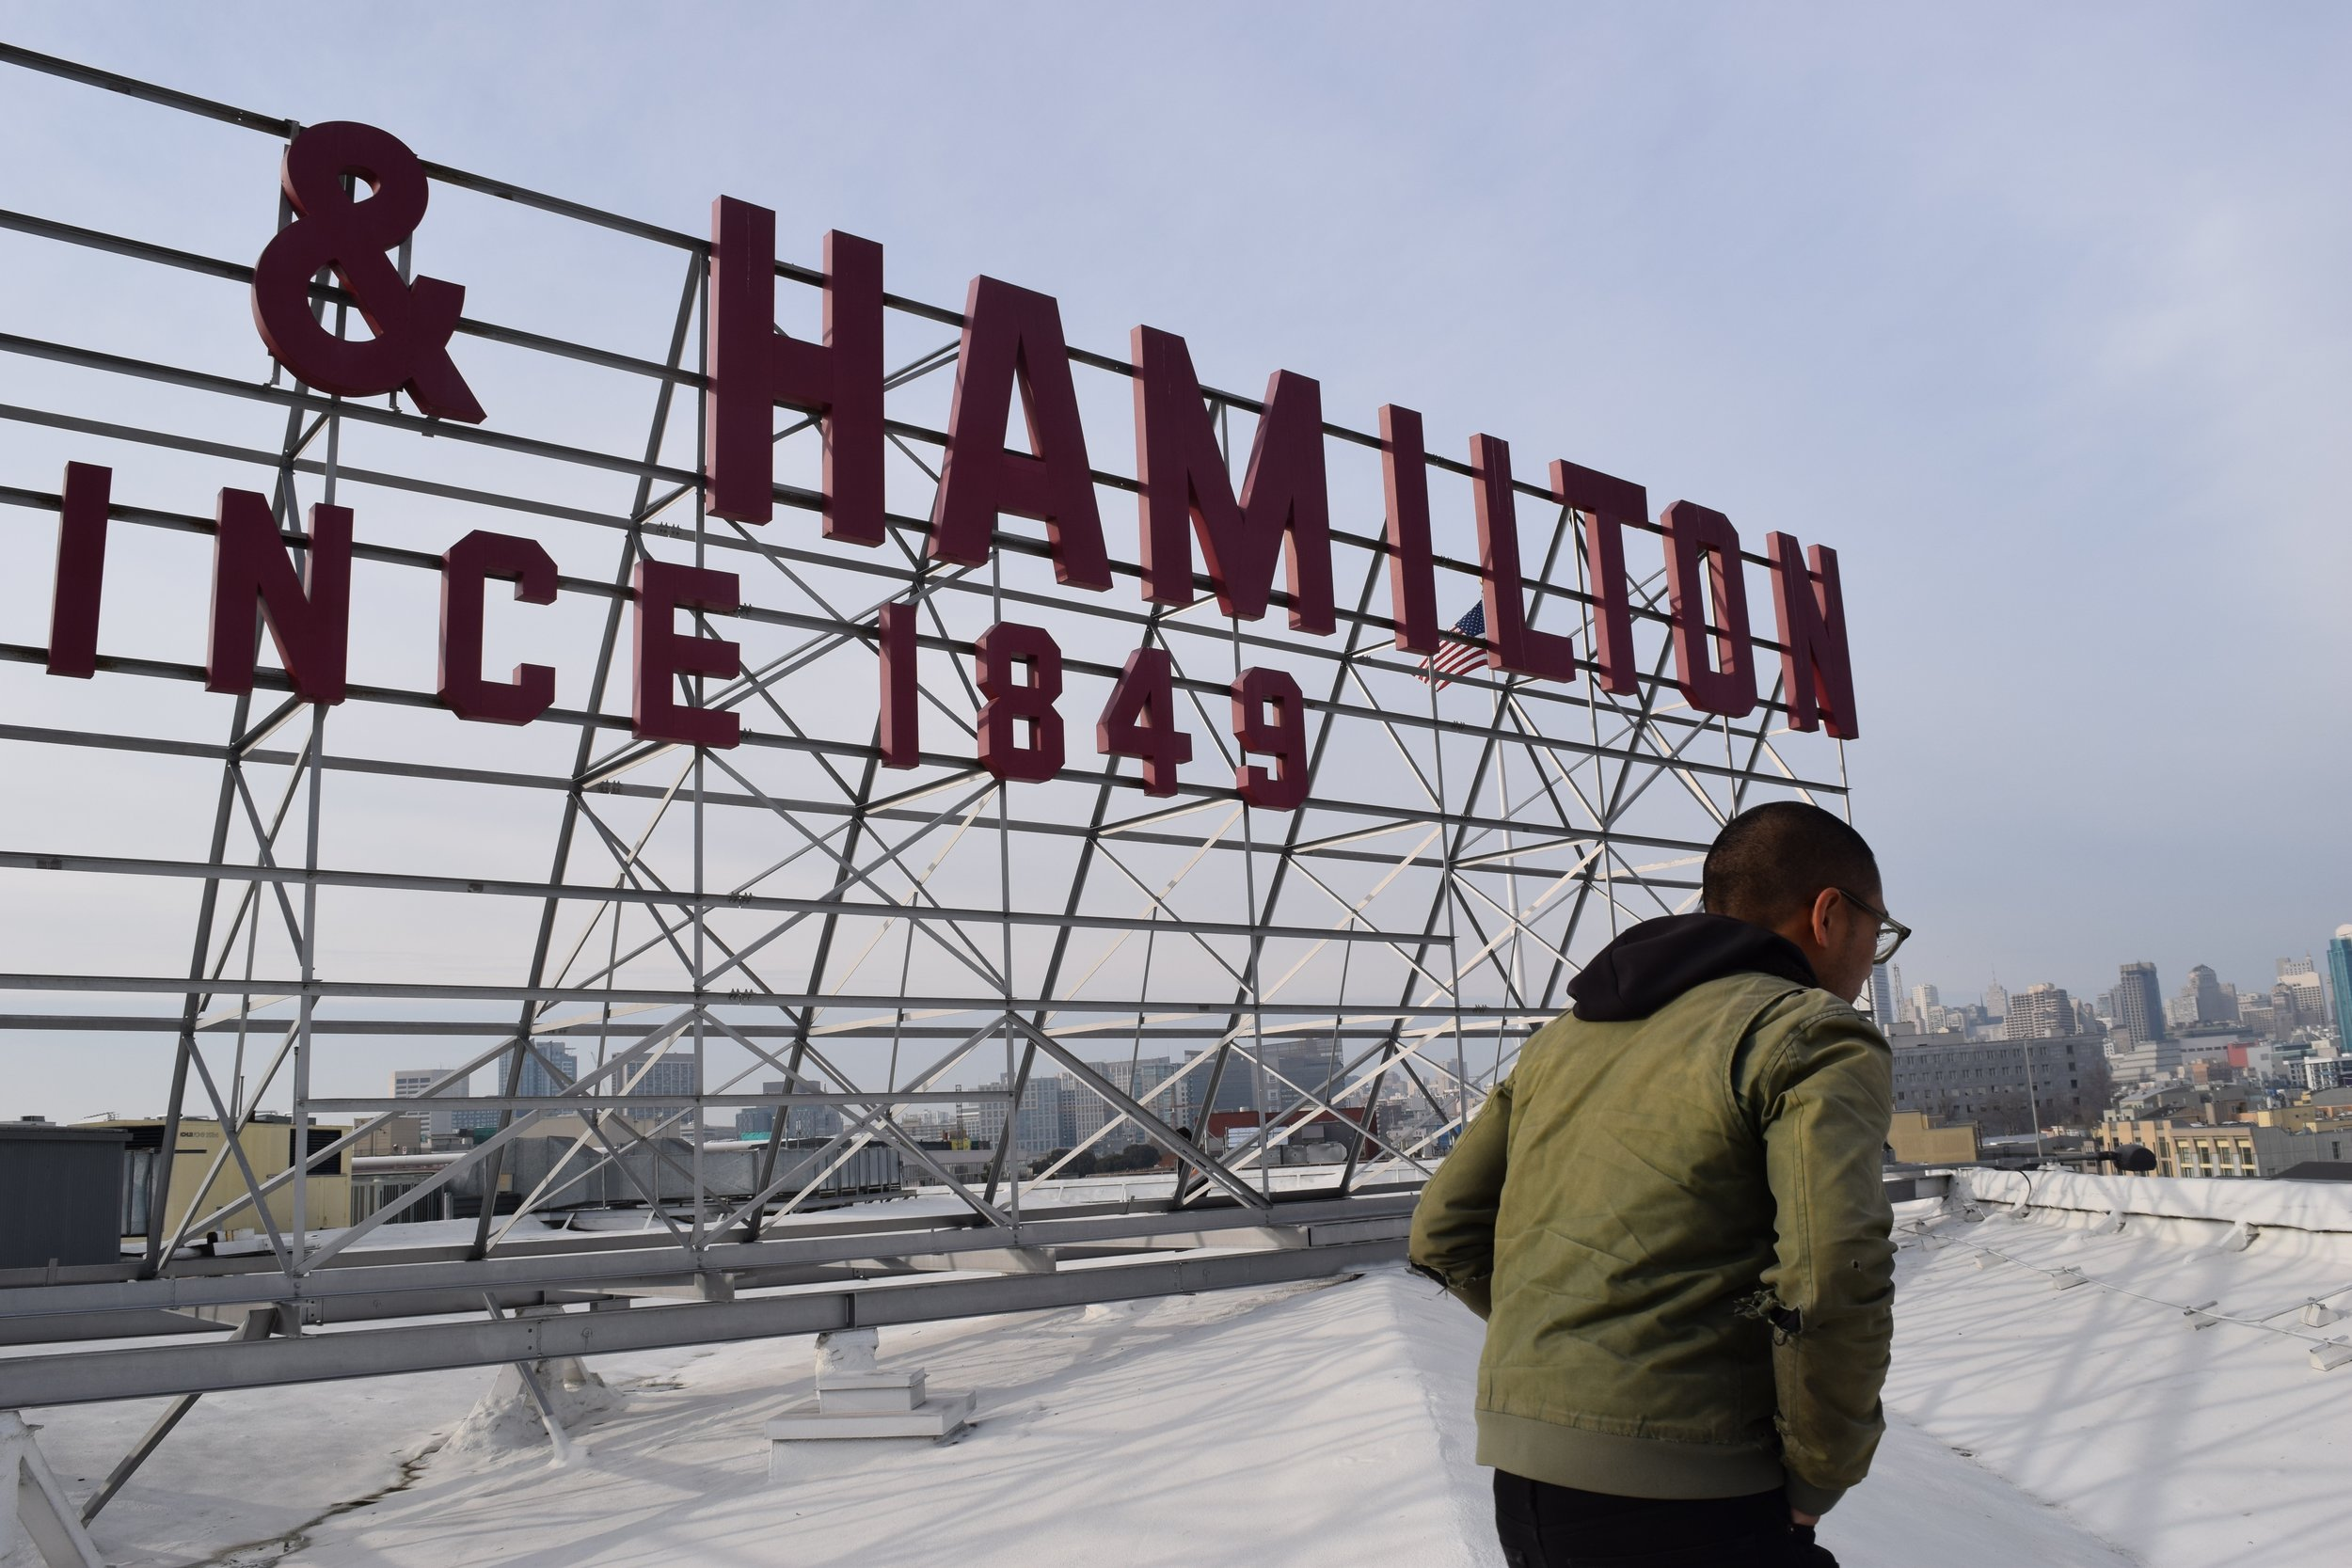 Inspiration for cafe branding & signage: the historic Baker & Hamilton sign atop the building